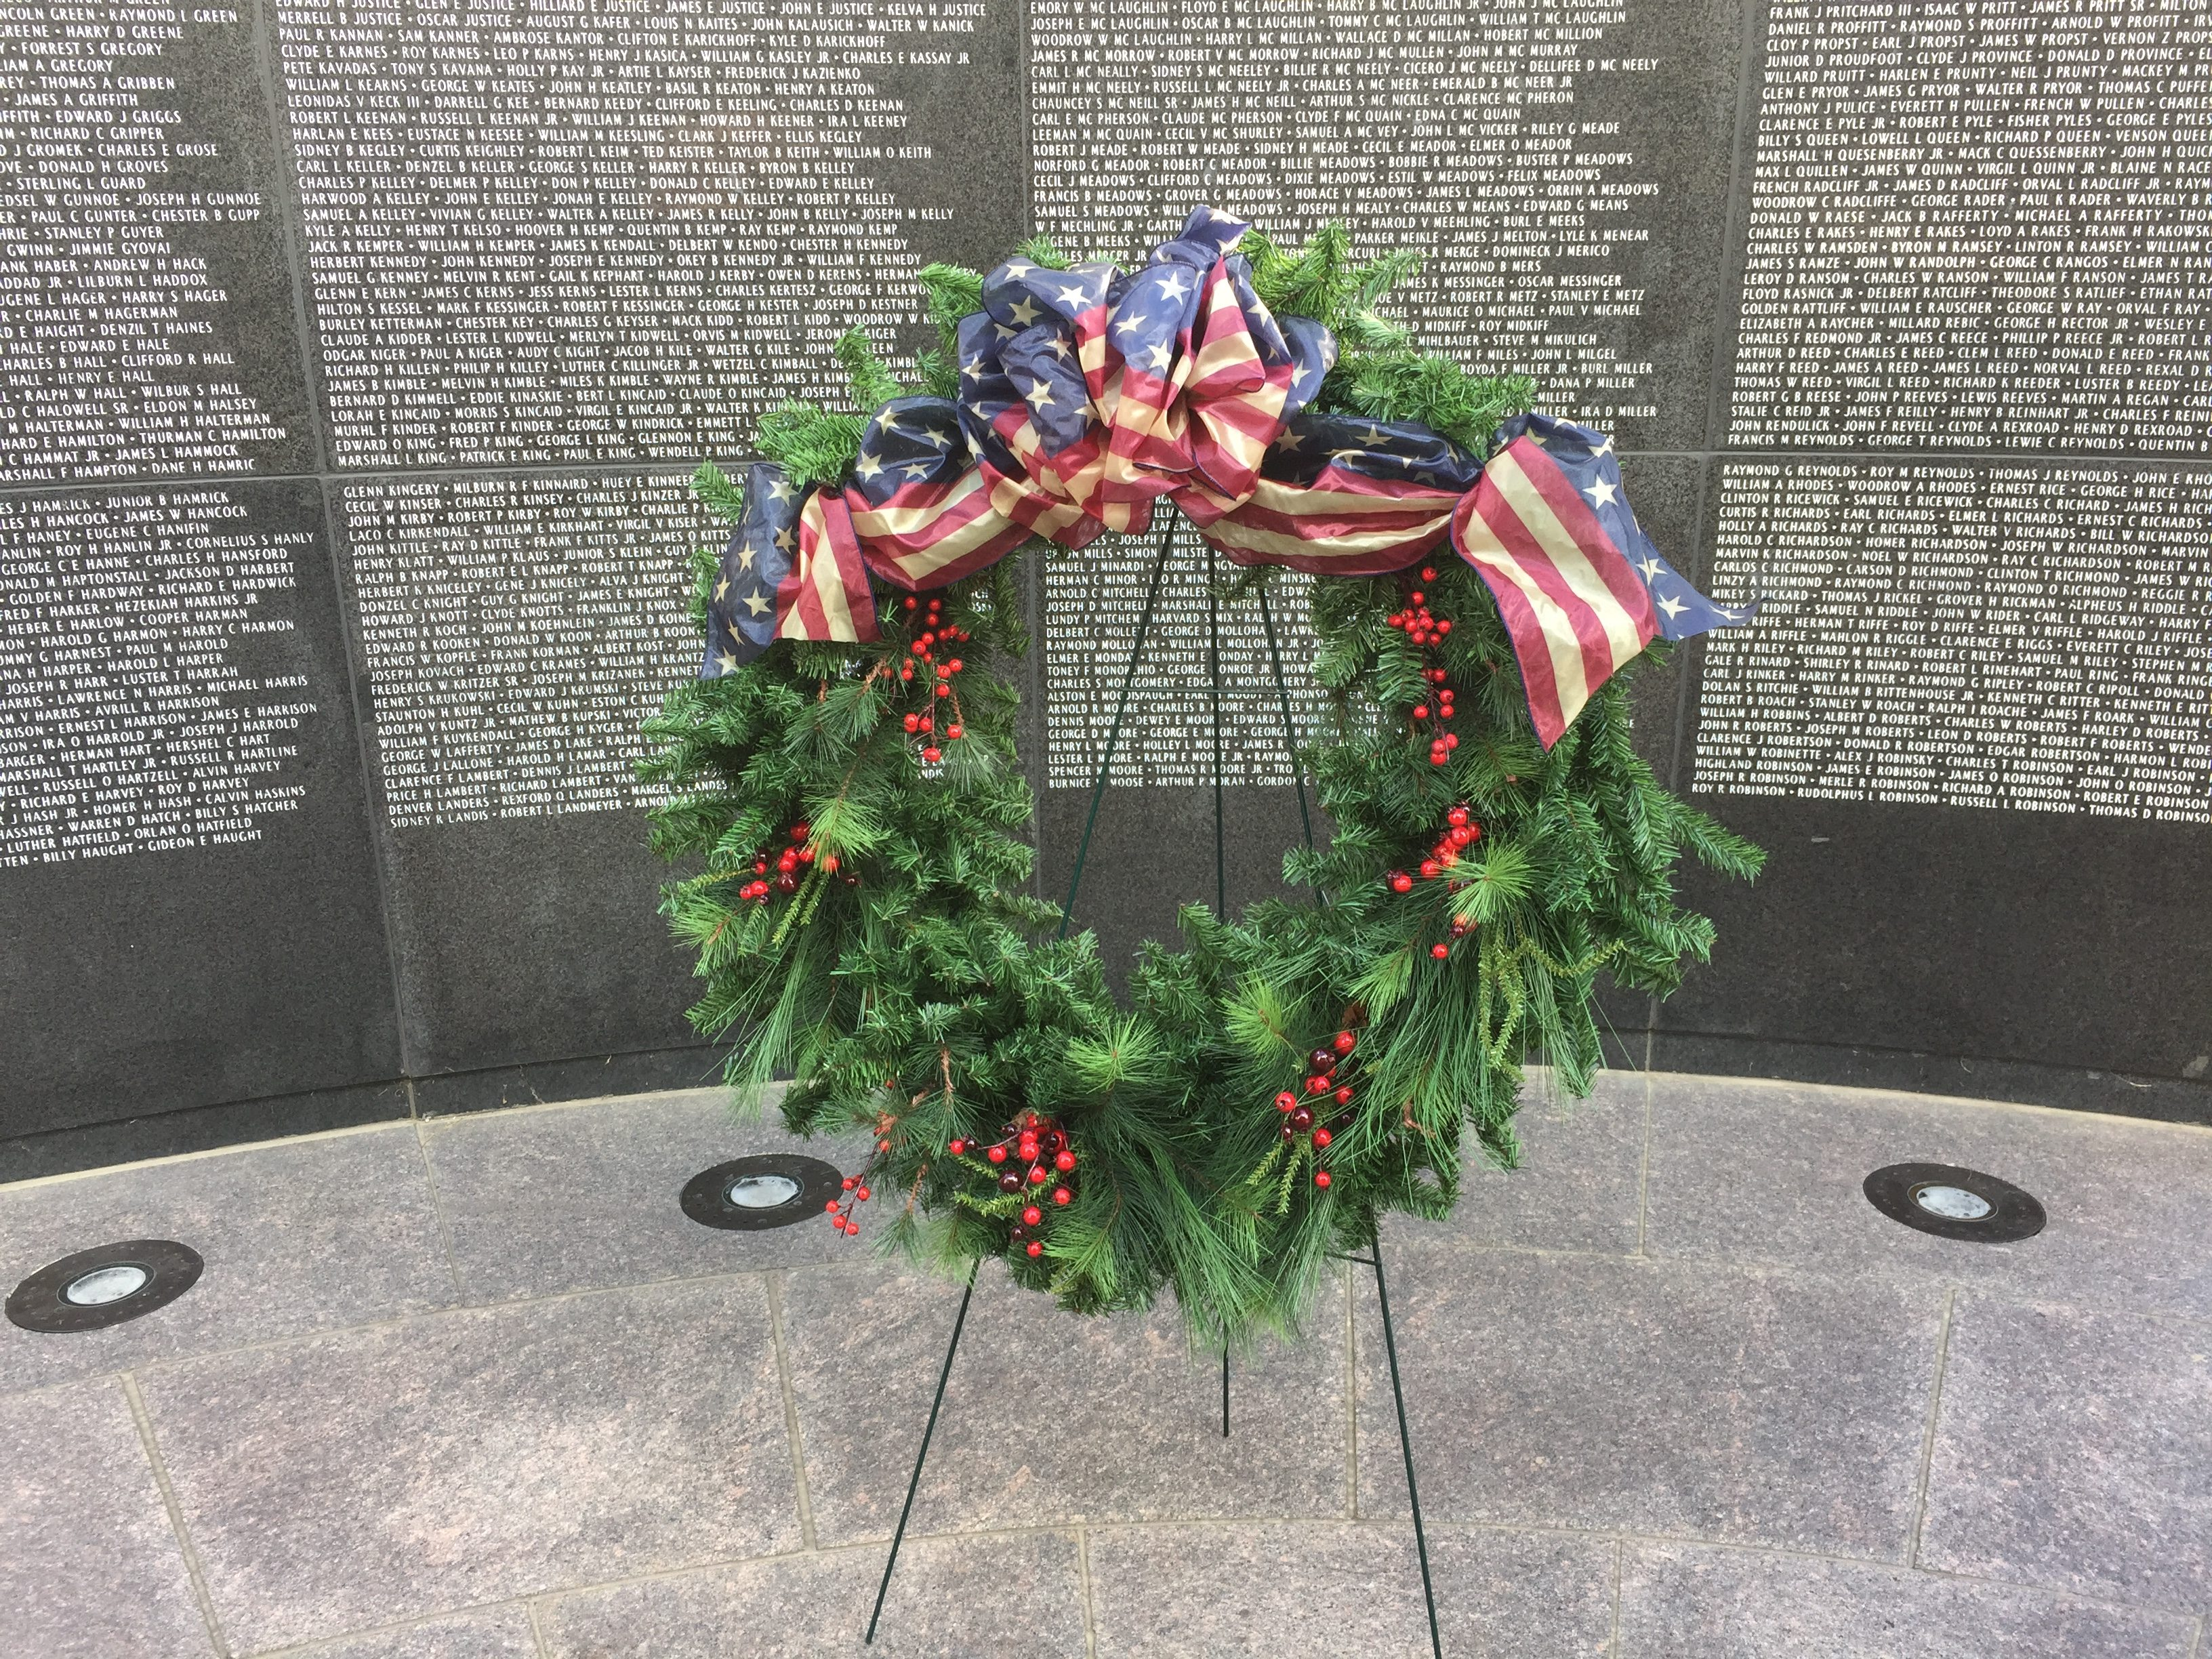 United States commemorates 75th anniversary of Pearl Harbor attack